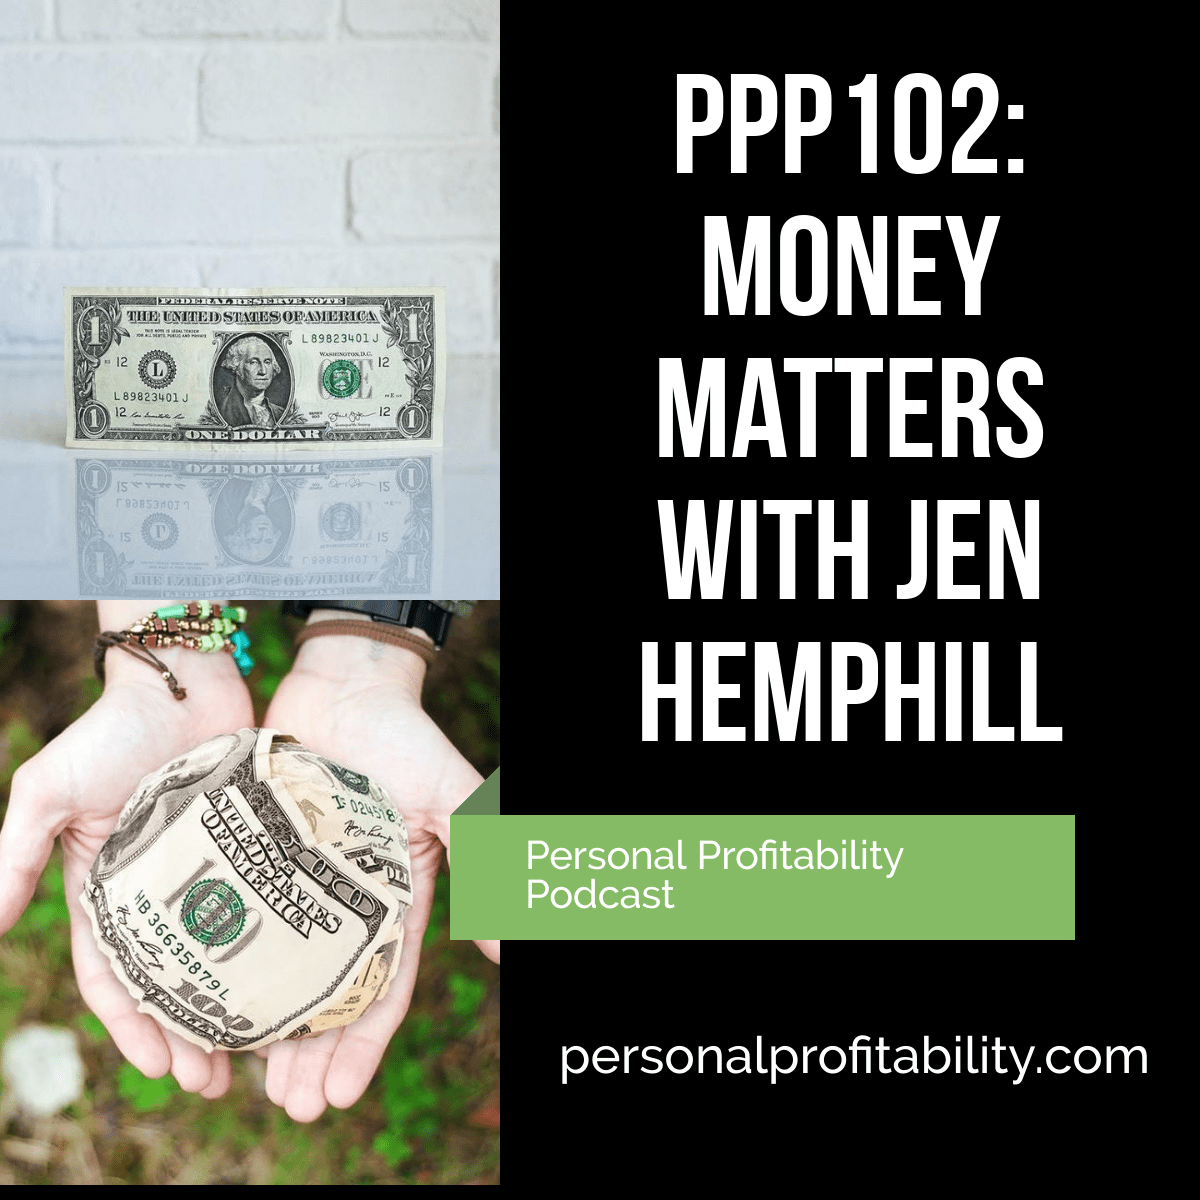 Ppp102 Money Matters With Jen Hemphill